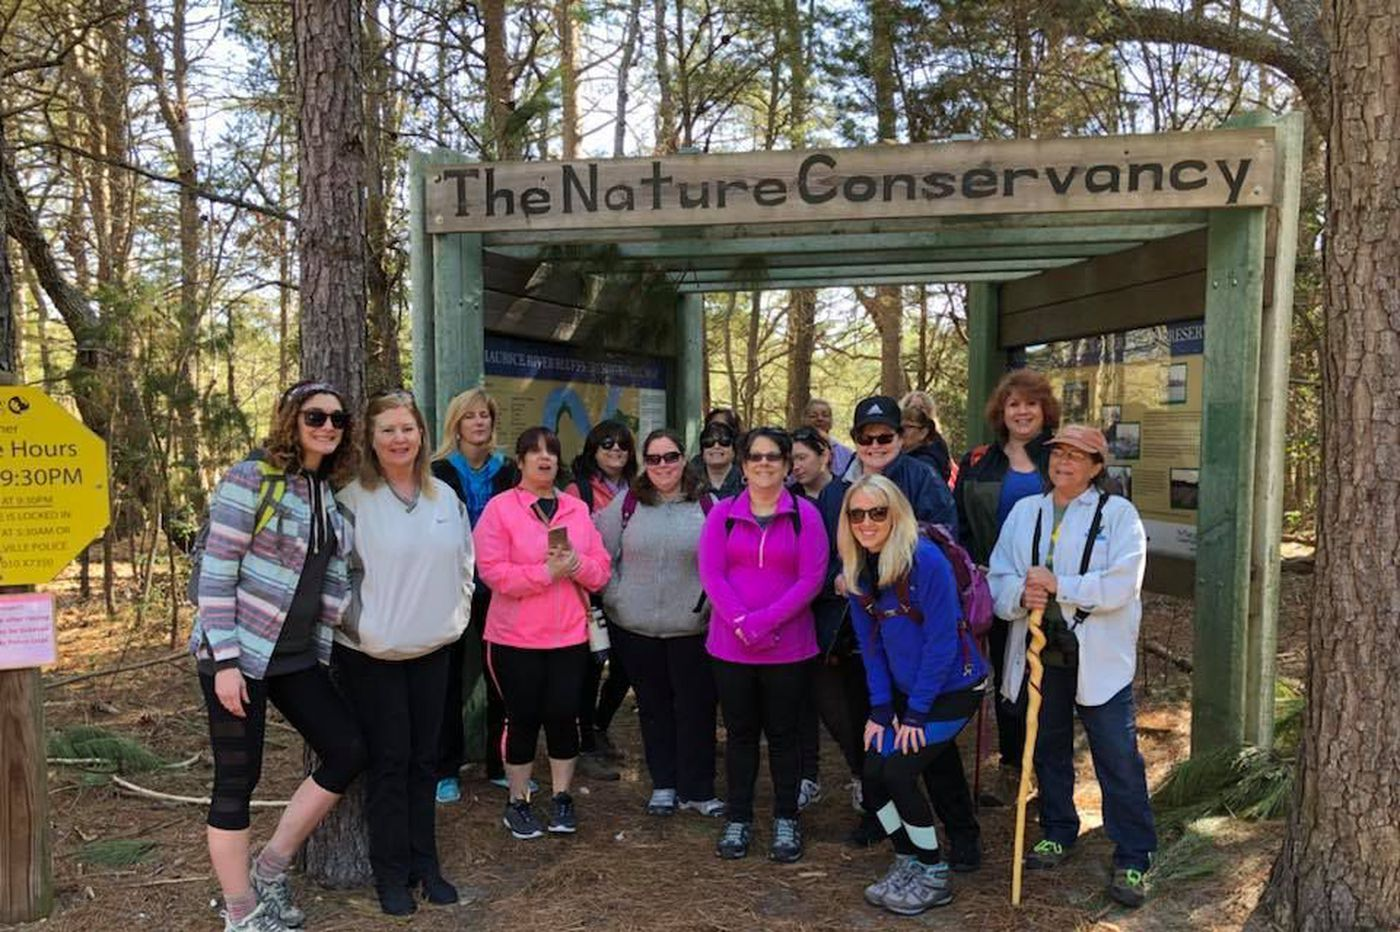 Women's hiking group gives confidence to camping novices and nature enthusiasts